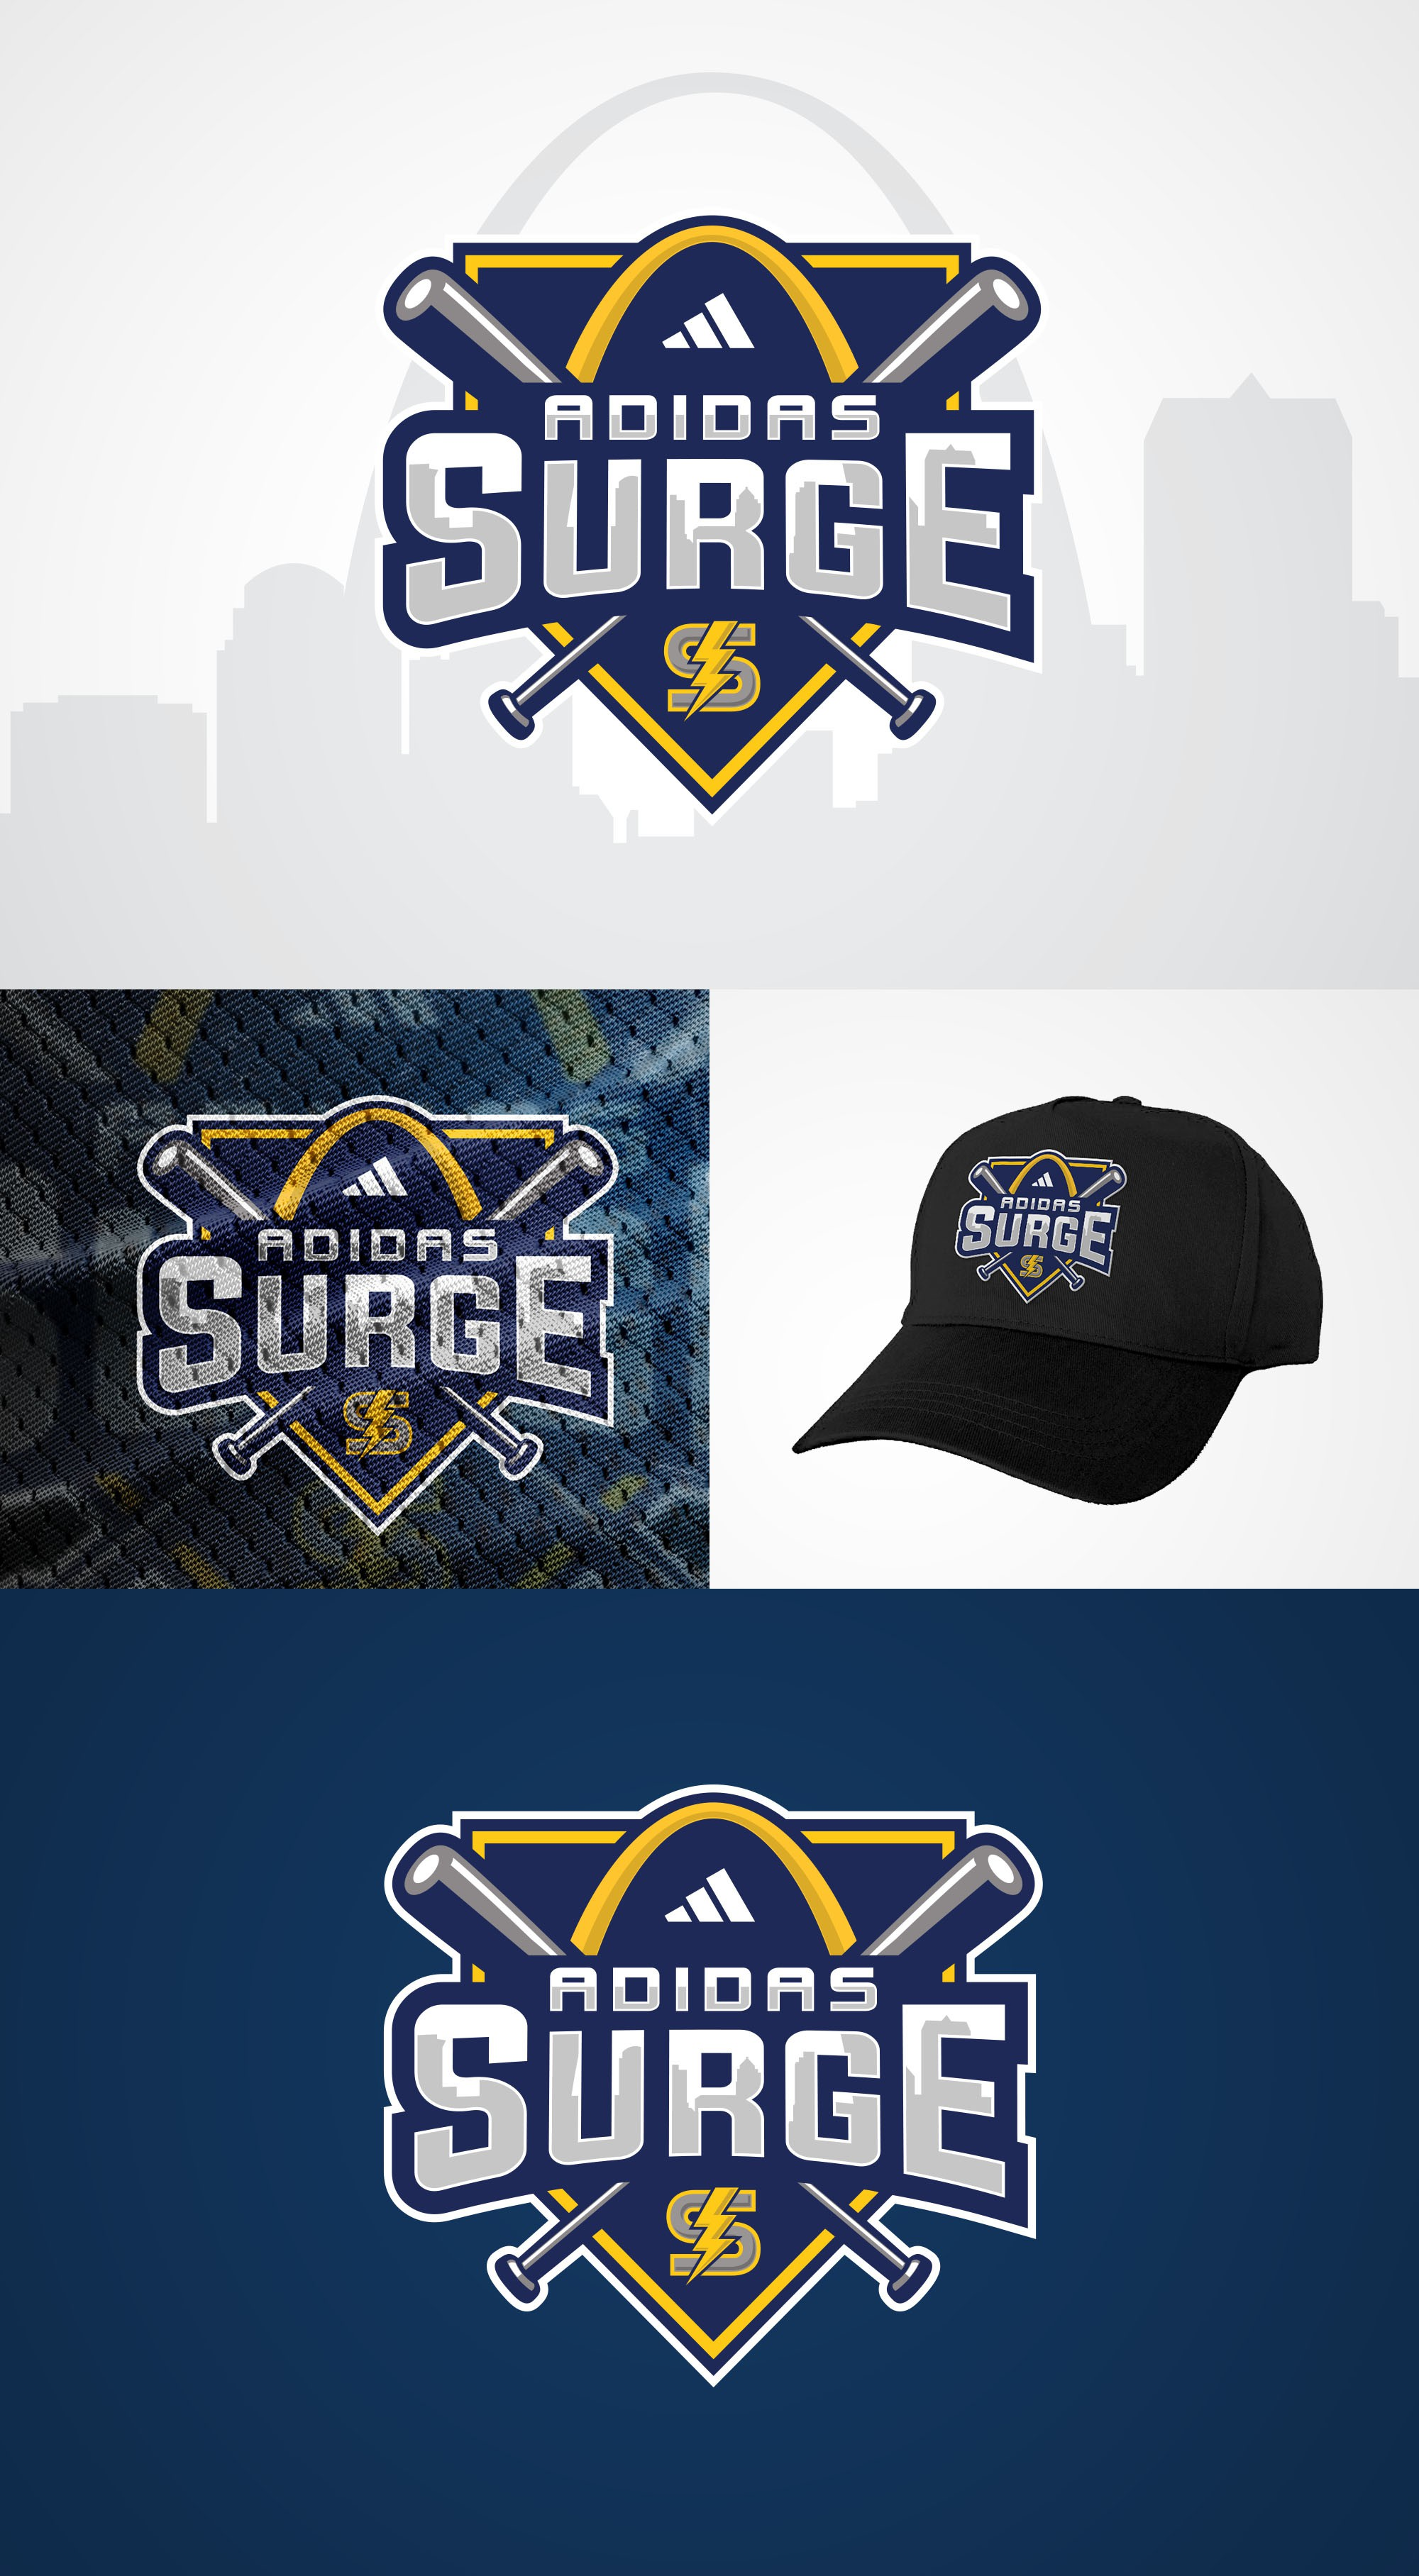 Baseball team sponsored by adidas so include adidas logo as well as ours.  Please include a logo that we can put on hats